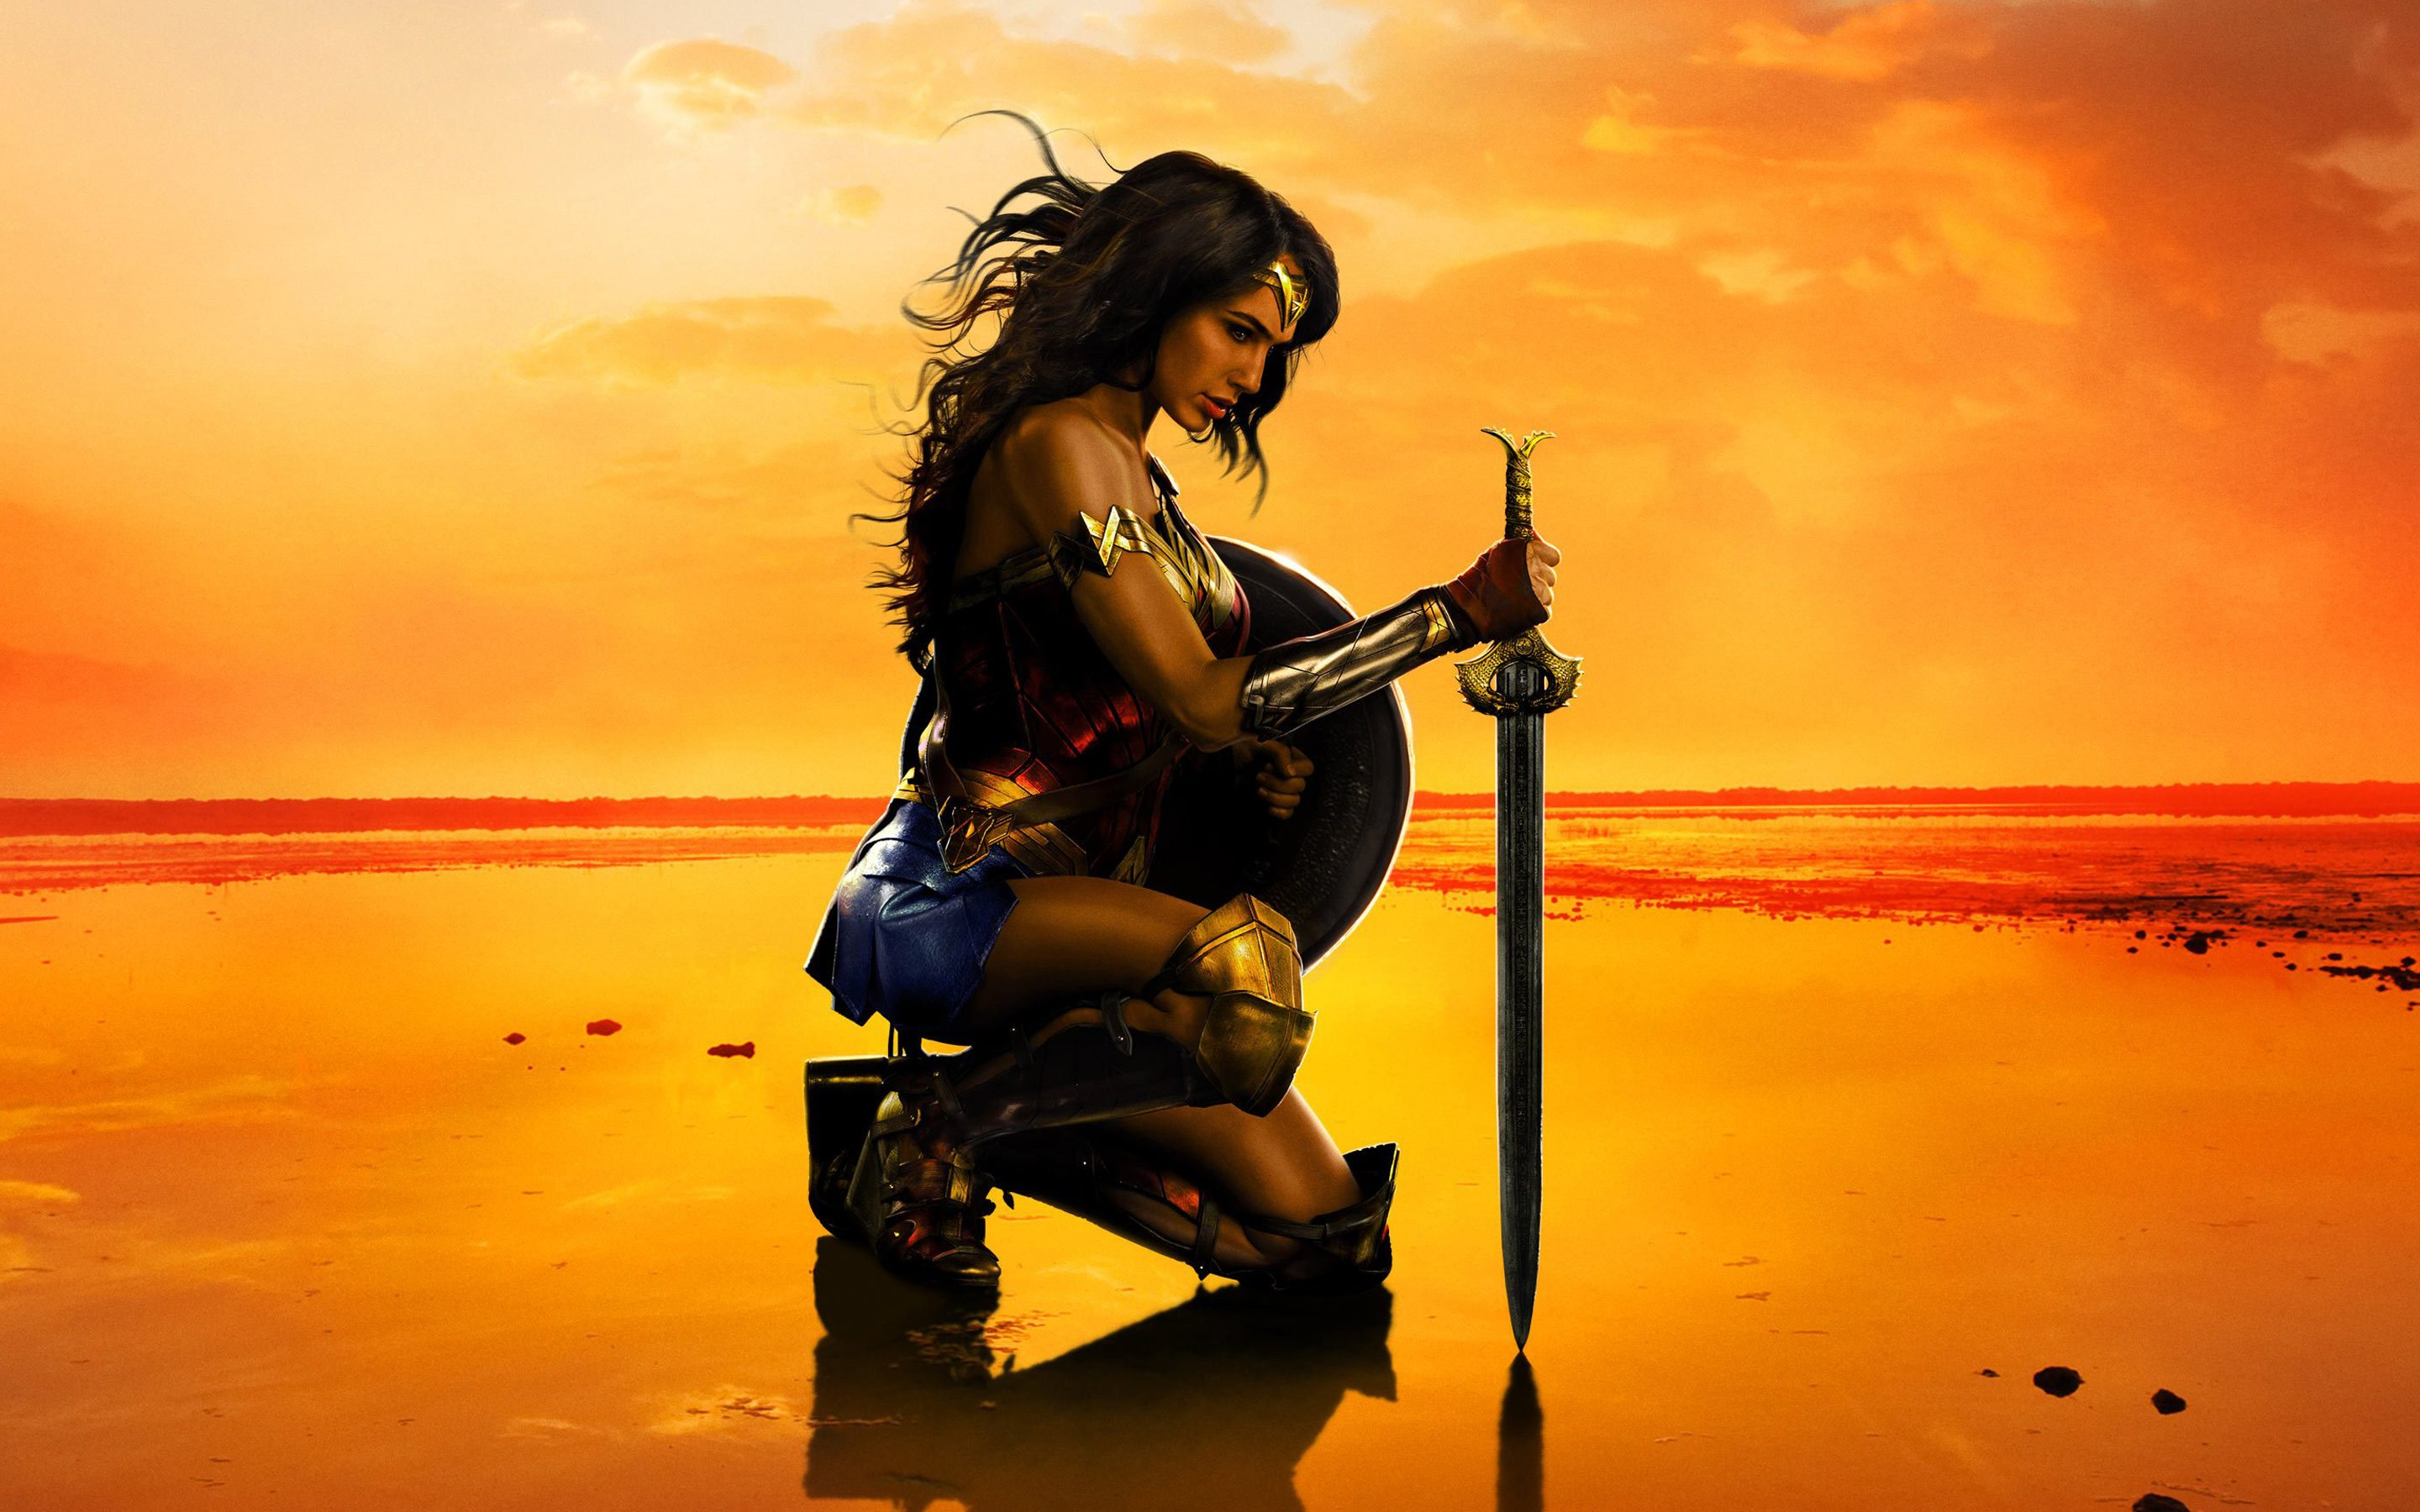 Warrior Woman Wallpapers HD